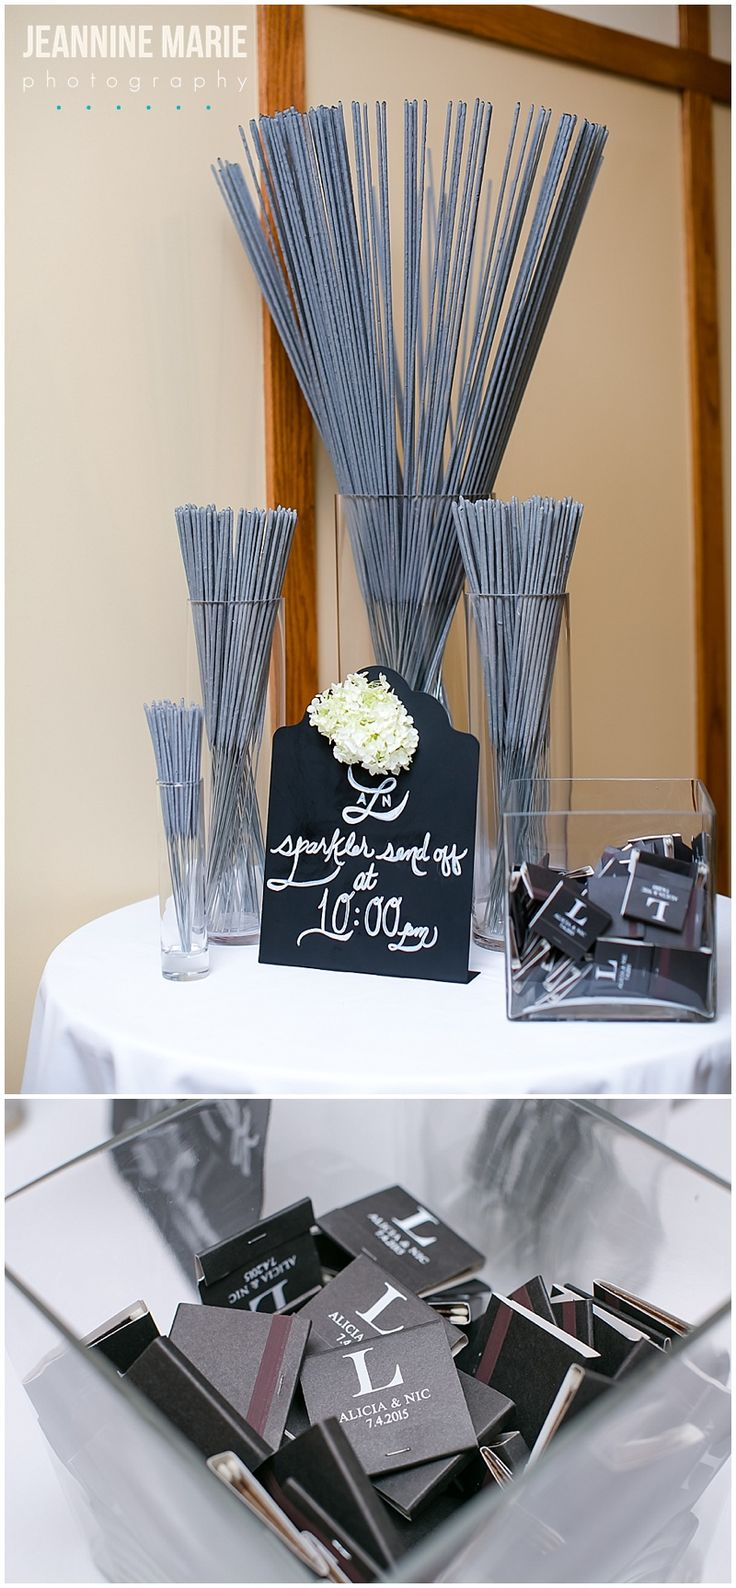 Sparklers and personalized matches as wedding guest favors for Olympic Hills Golf Club wedding. Photos by Minnesota wedding photographer Jeannine Marie Photography. #wedding #Olympichillsgofclub #weddingfavors #guestfavors #sparklers #weddingideas #saintpaulweddingphotographer #minnesotaweddingphotographer #jeanninemariephotography